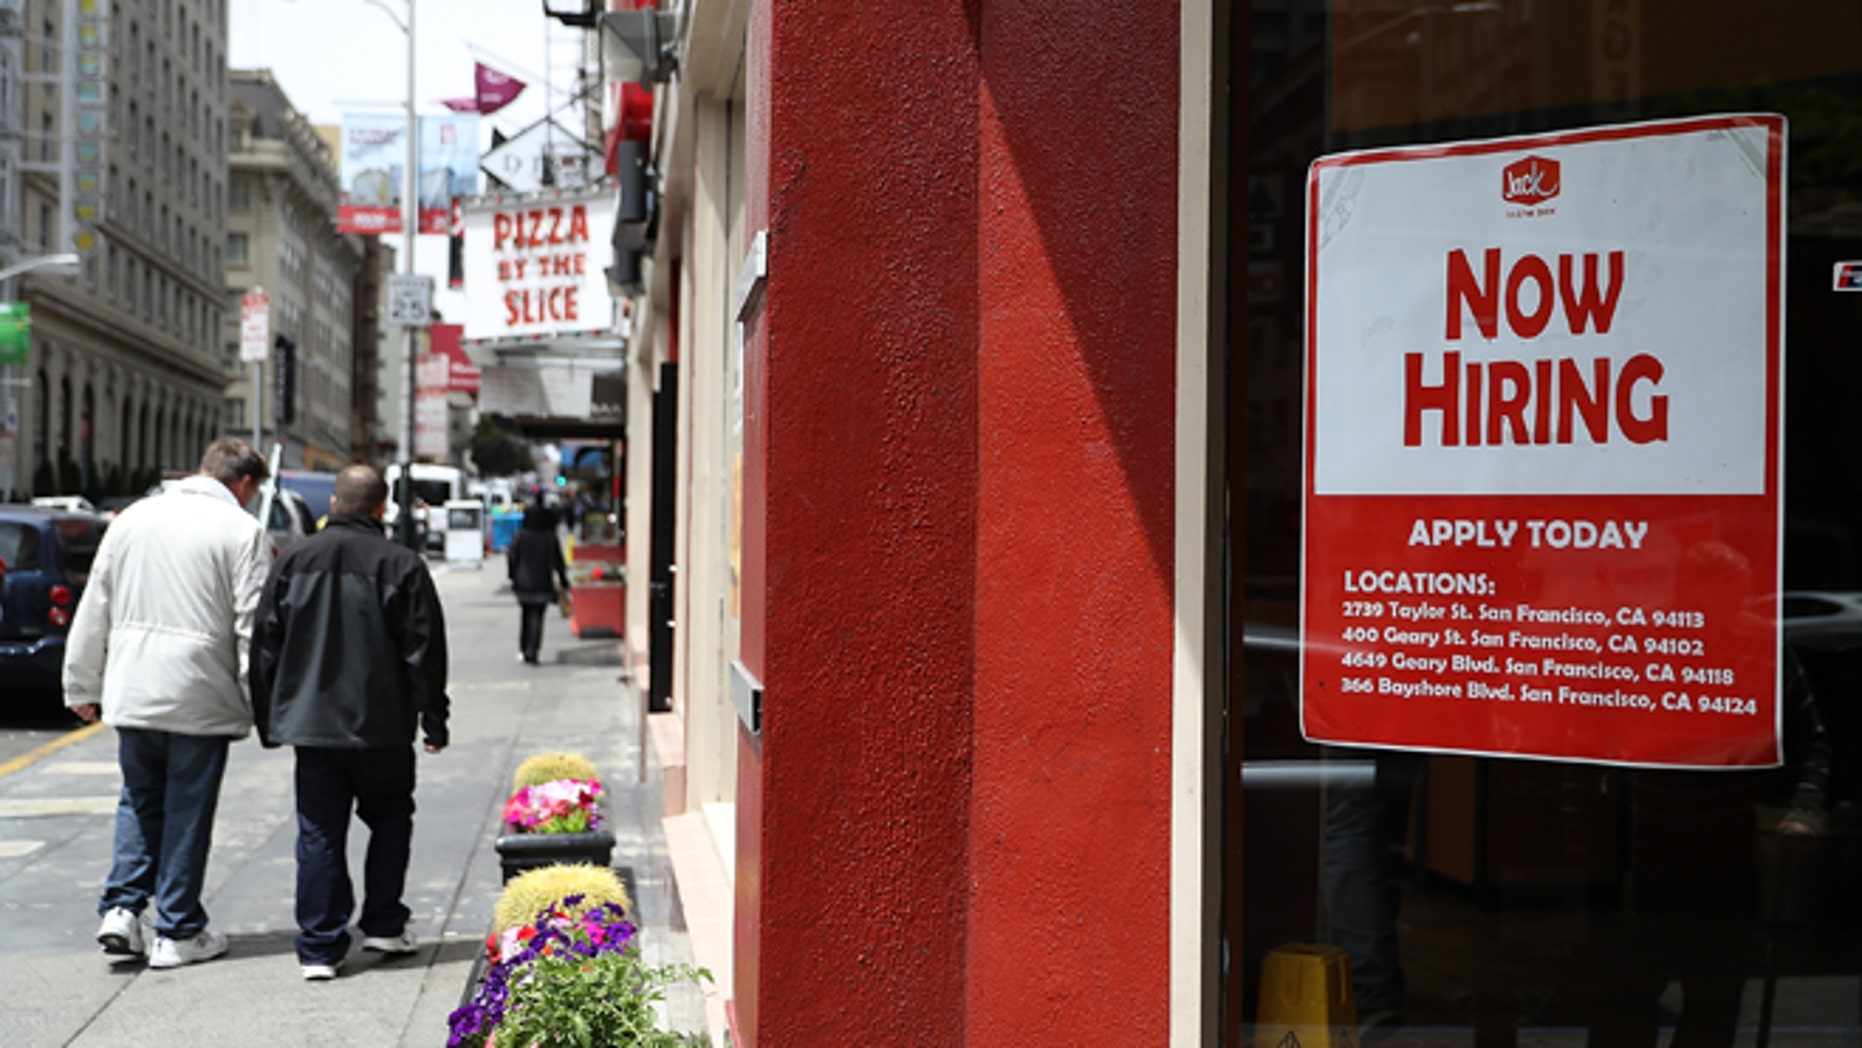 SAN FRANCISCO, CA - JULY 08:  A 'now hiring' sign is posted in the window of a fast food restaurant on July 8, 2016 in San Francisco, California. According to the the U.S. Labor Department, employment growth surged with 287,000 added jobs in June. The unemployment rate inched up to 4.9% from 4.7% with an estimated 400,000 people returning to the workforce, many who had given up on job searches.   (Photo by Justin Sullivan/Getty Images)